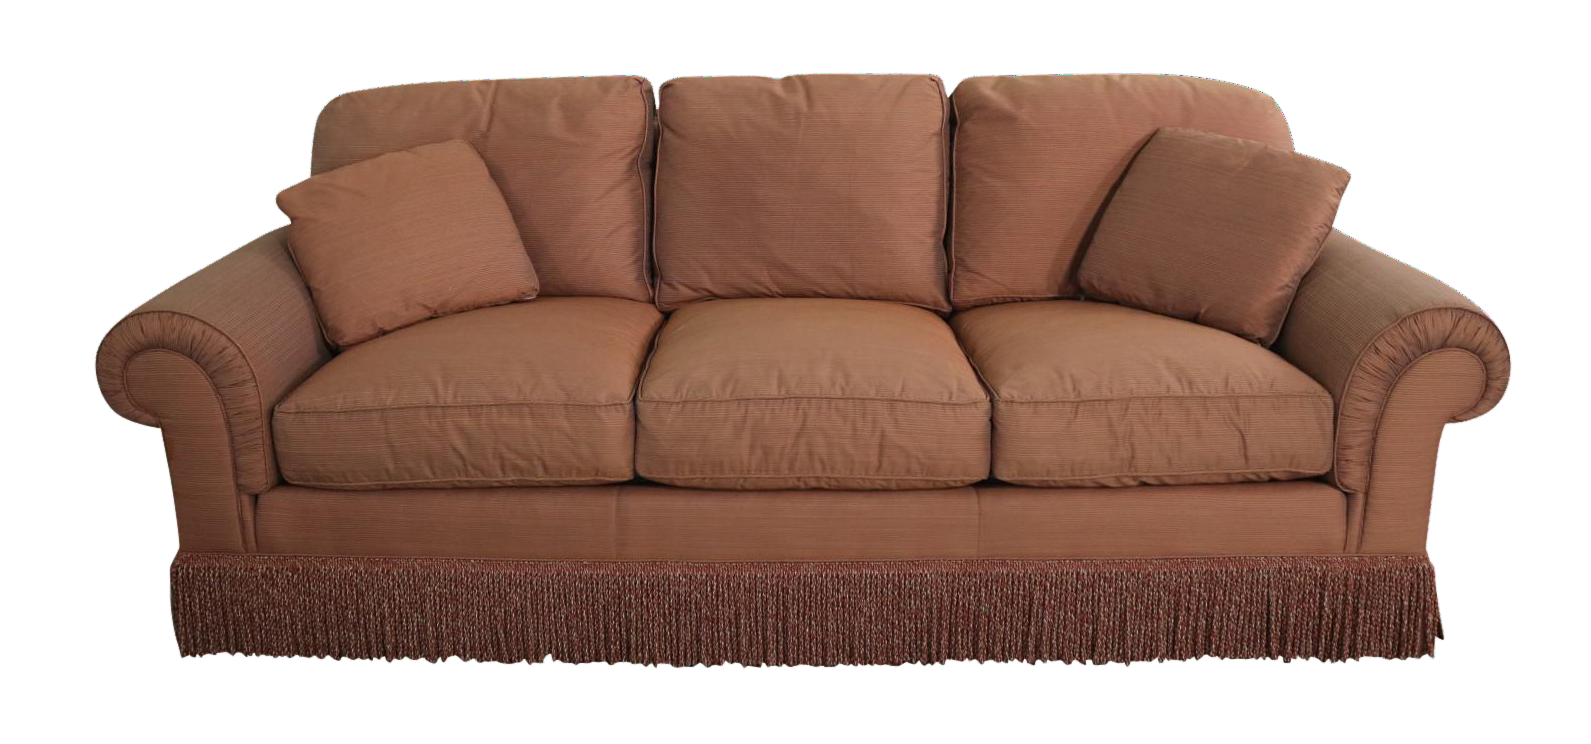 Pair Baker Sofas Lawson Style From The Crown And Tulip Collection  Terracotta For Sale